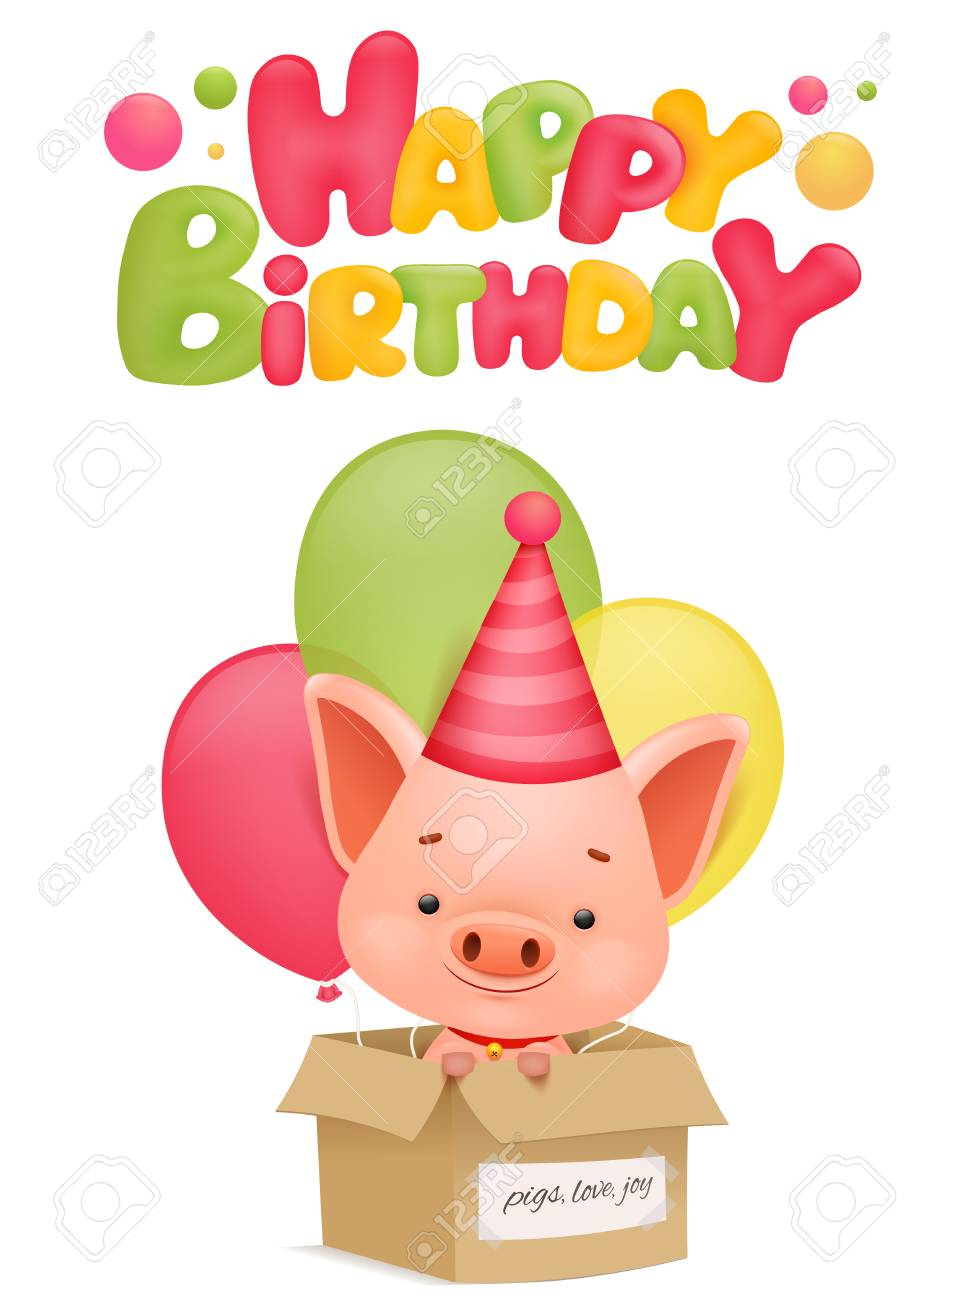 Happy Birthday Card Template With Pig Cartoon Character Vector Illustration Stock